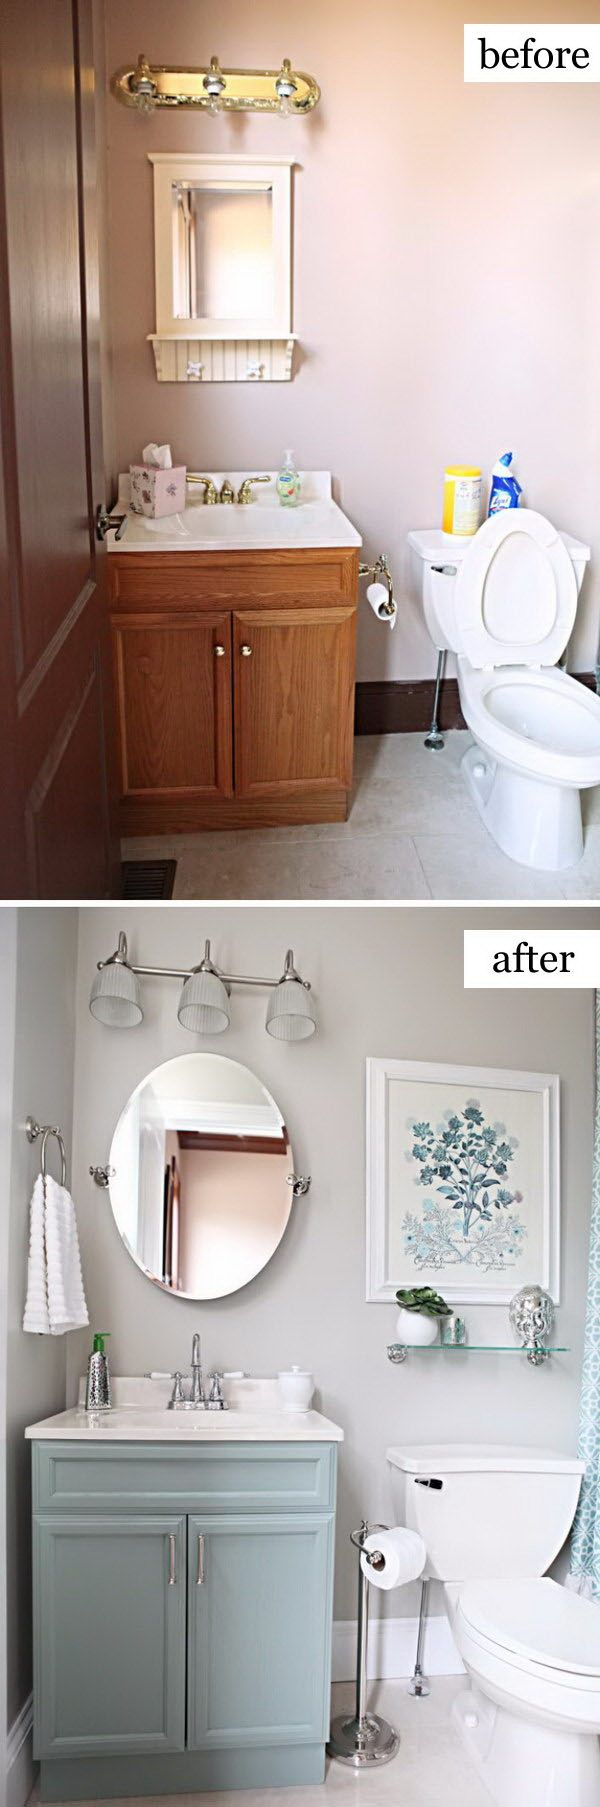 Growing weary of your outdated bathroom? Weu2019ve got excellent DIY bathroom ideas to inspire your renovation plans. Whether you want a cottage farmhouse bathroom makeover, budg